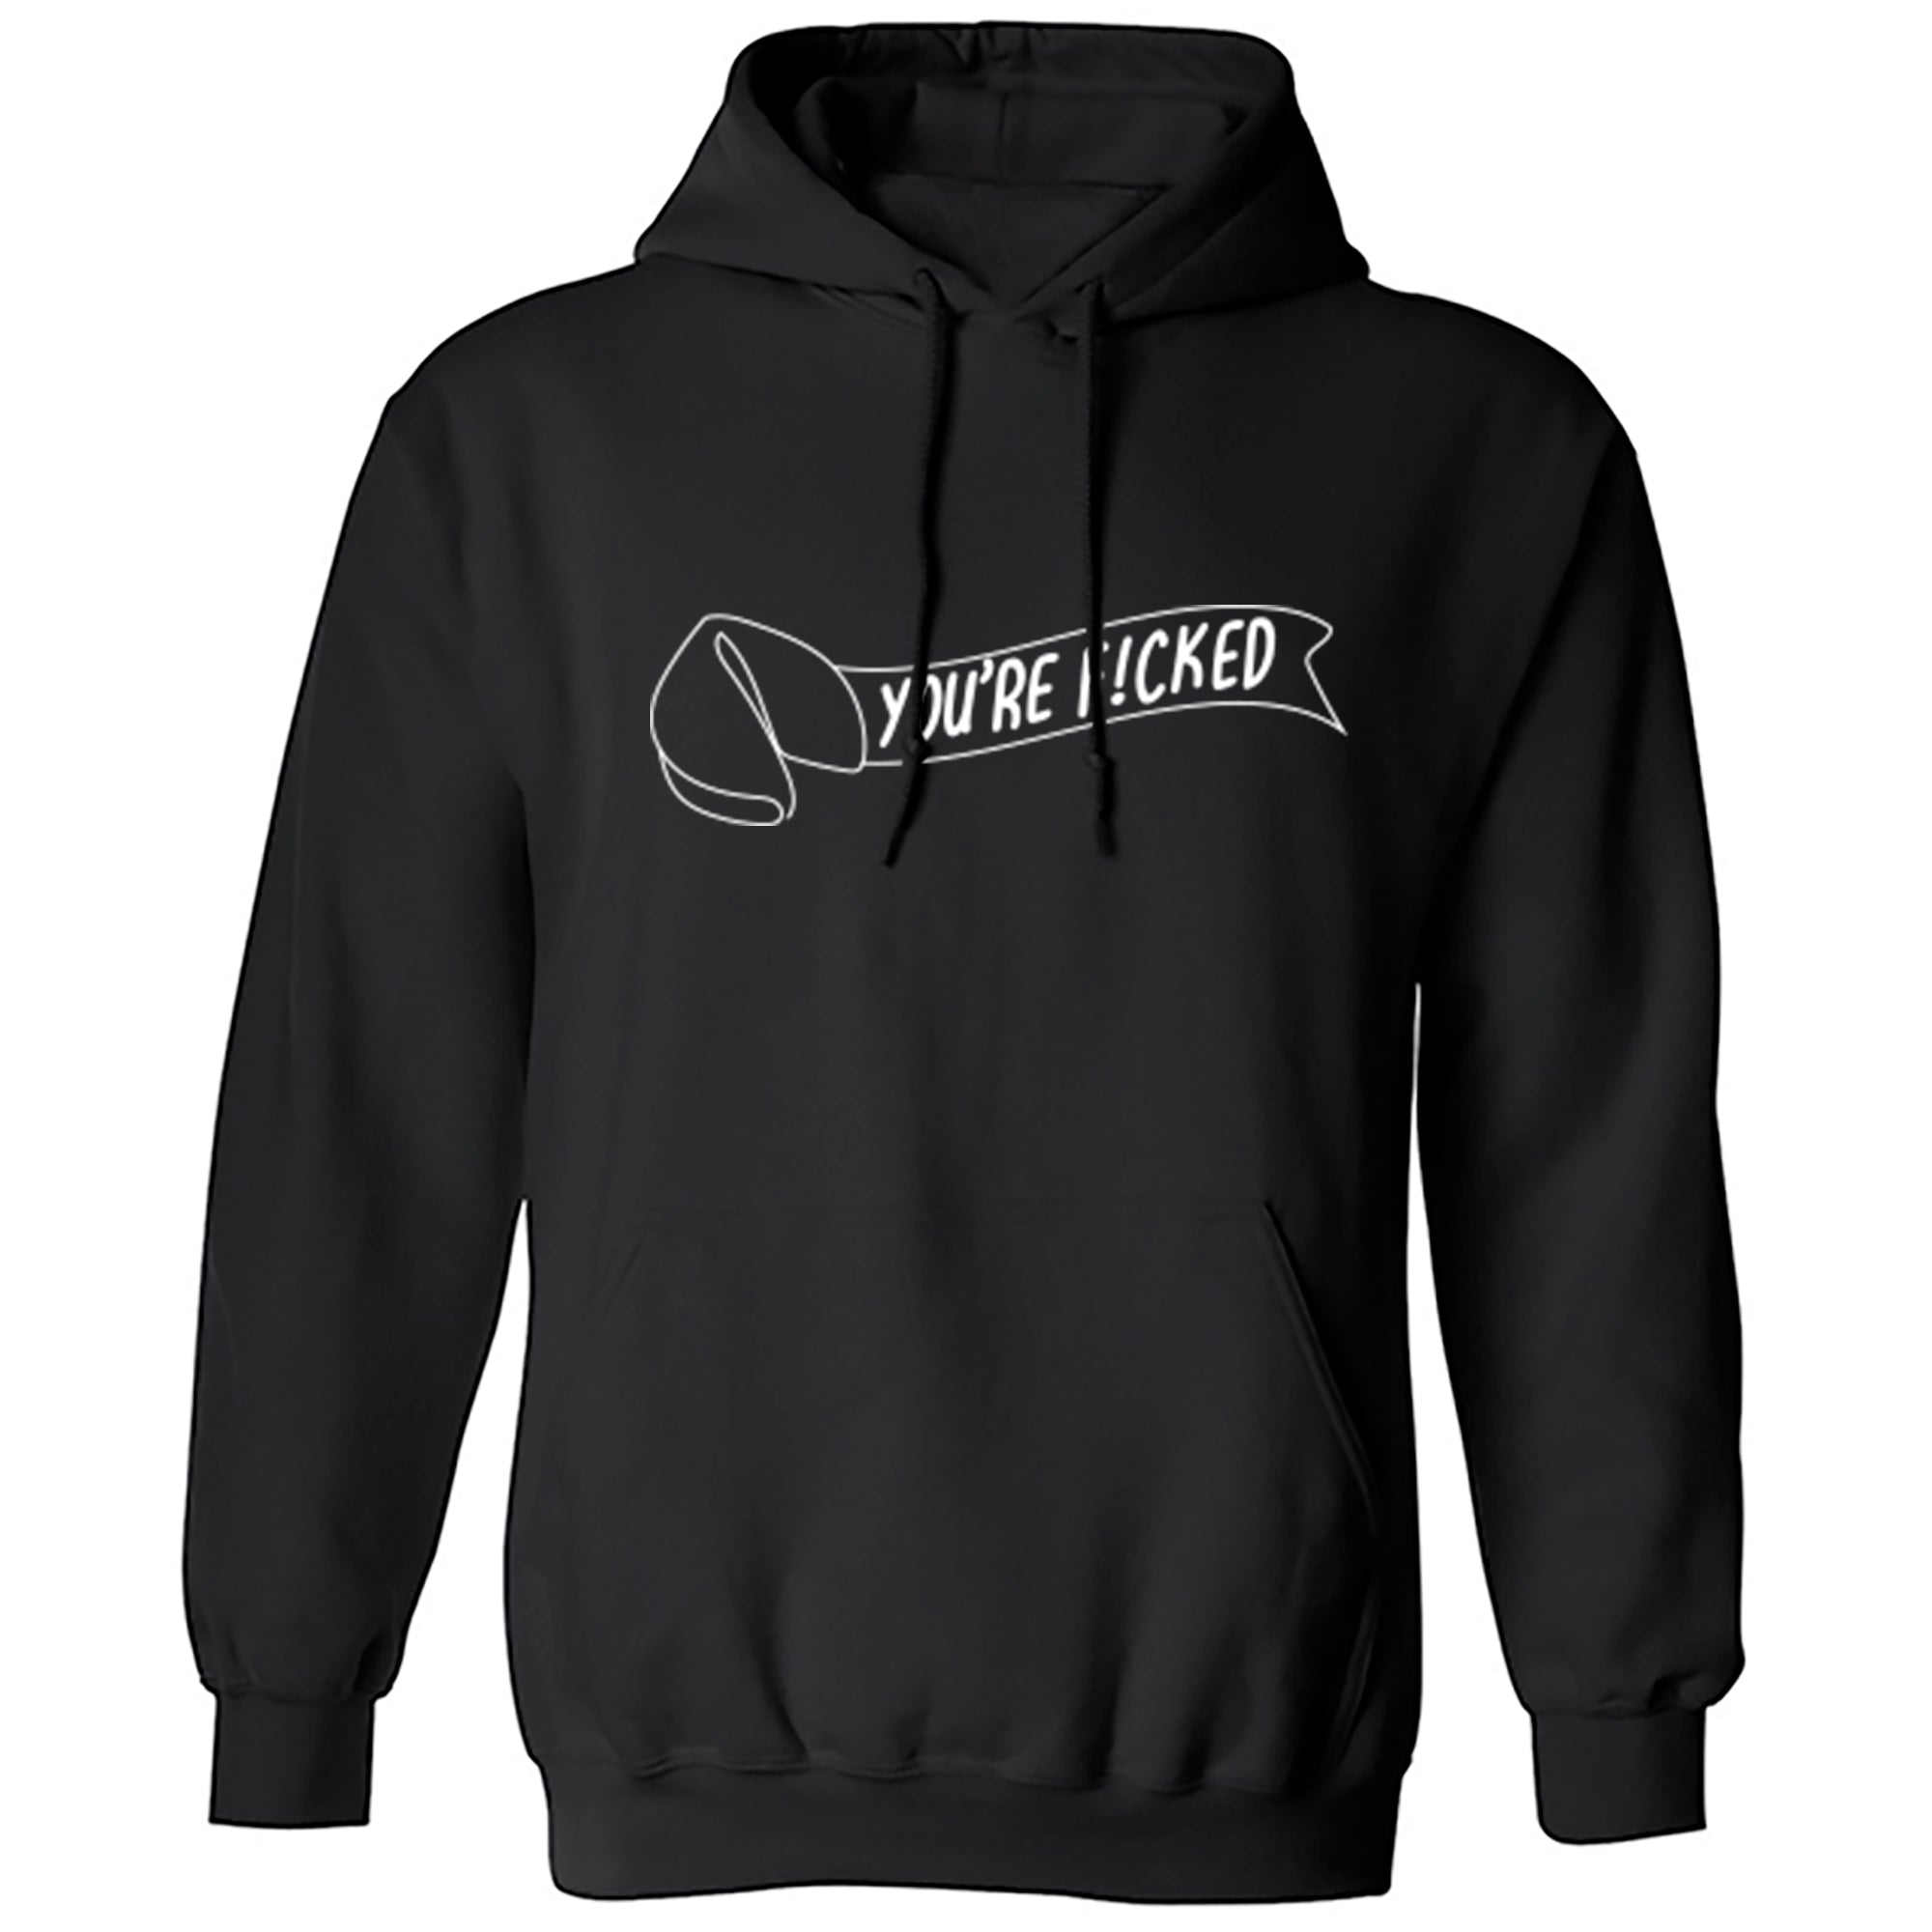 You're F!cked Unisex Hoodie S0022 - Illustrated Identity Ltd.